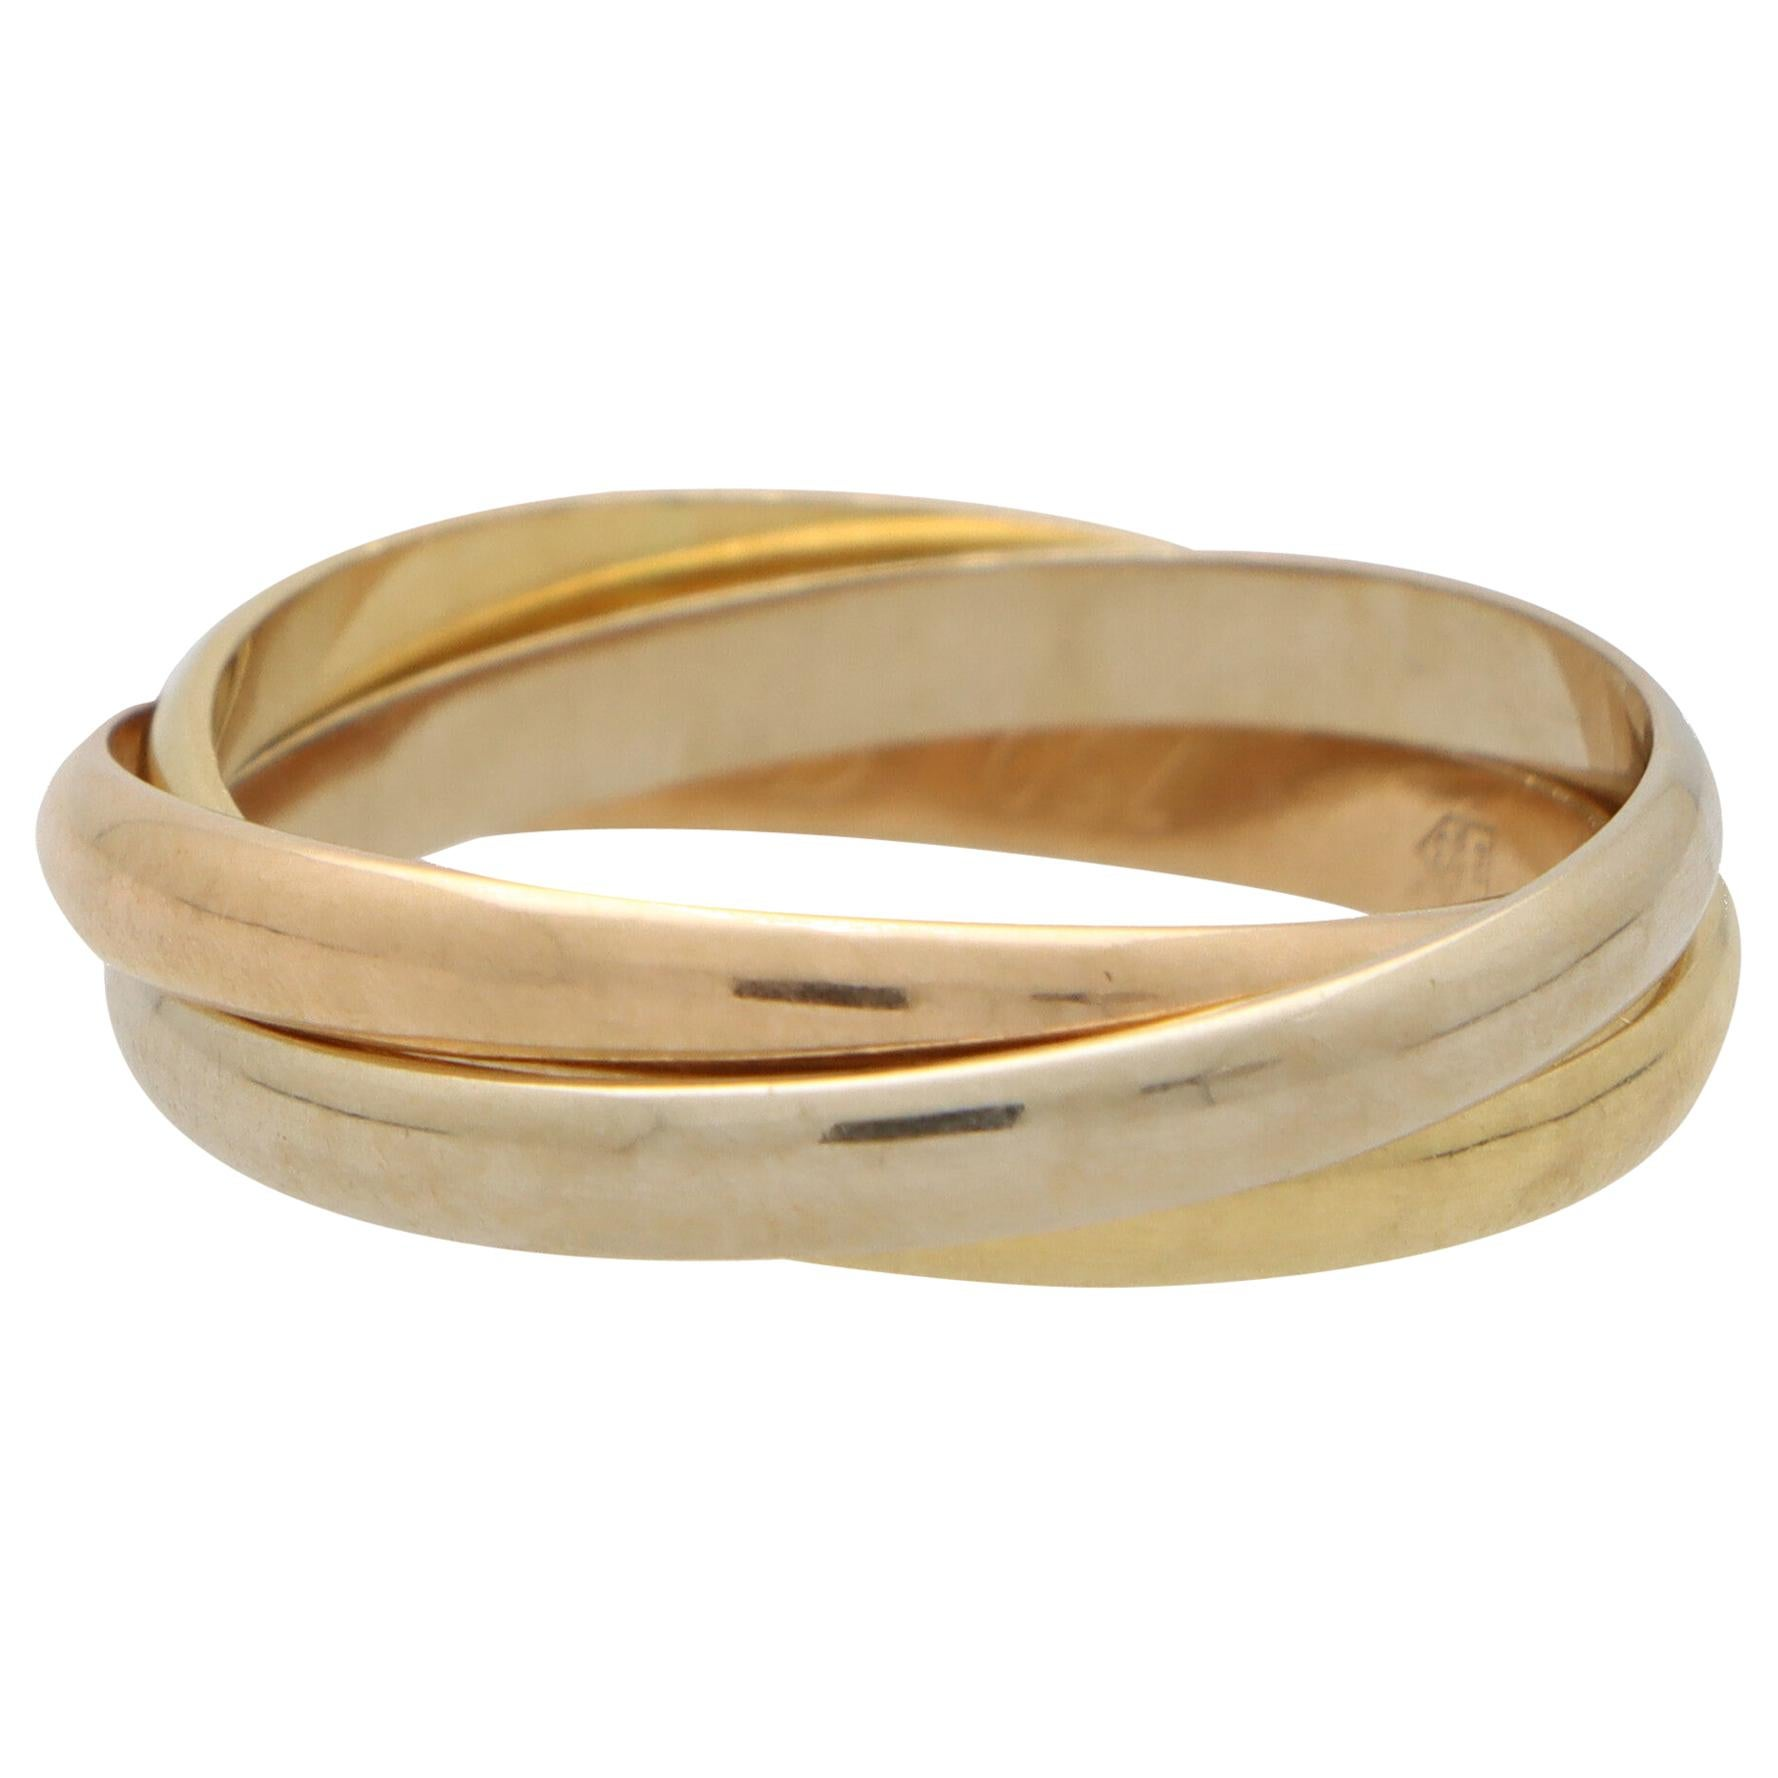 Vintage Cartier Trinity Ring Set in 18k Yellow, Rose and White Gold